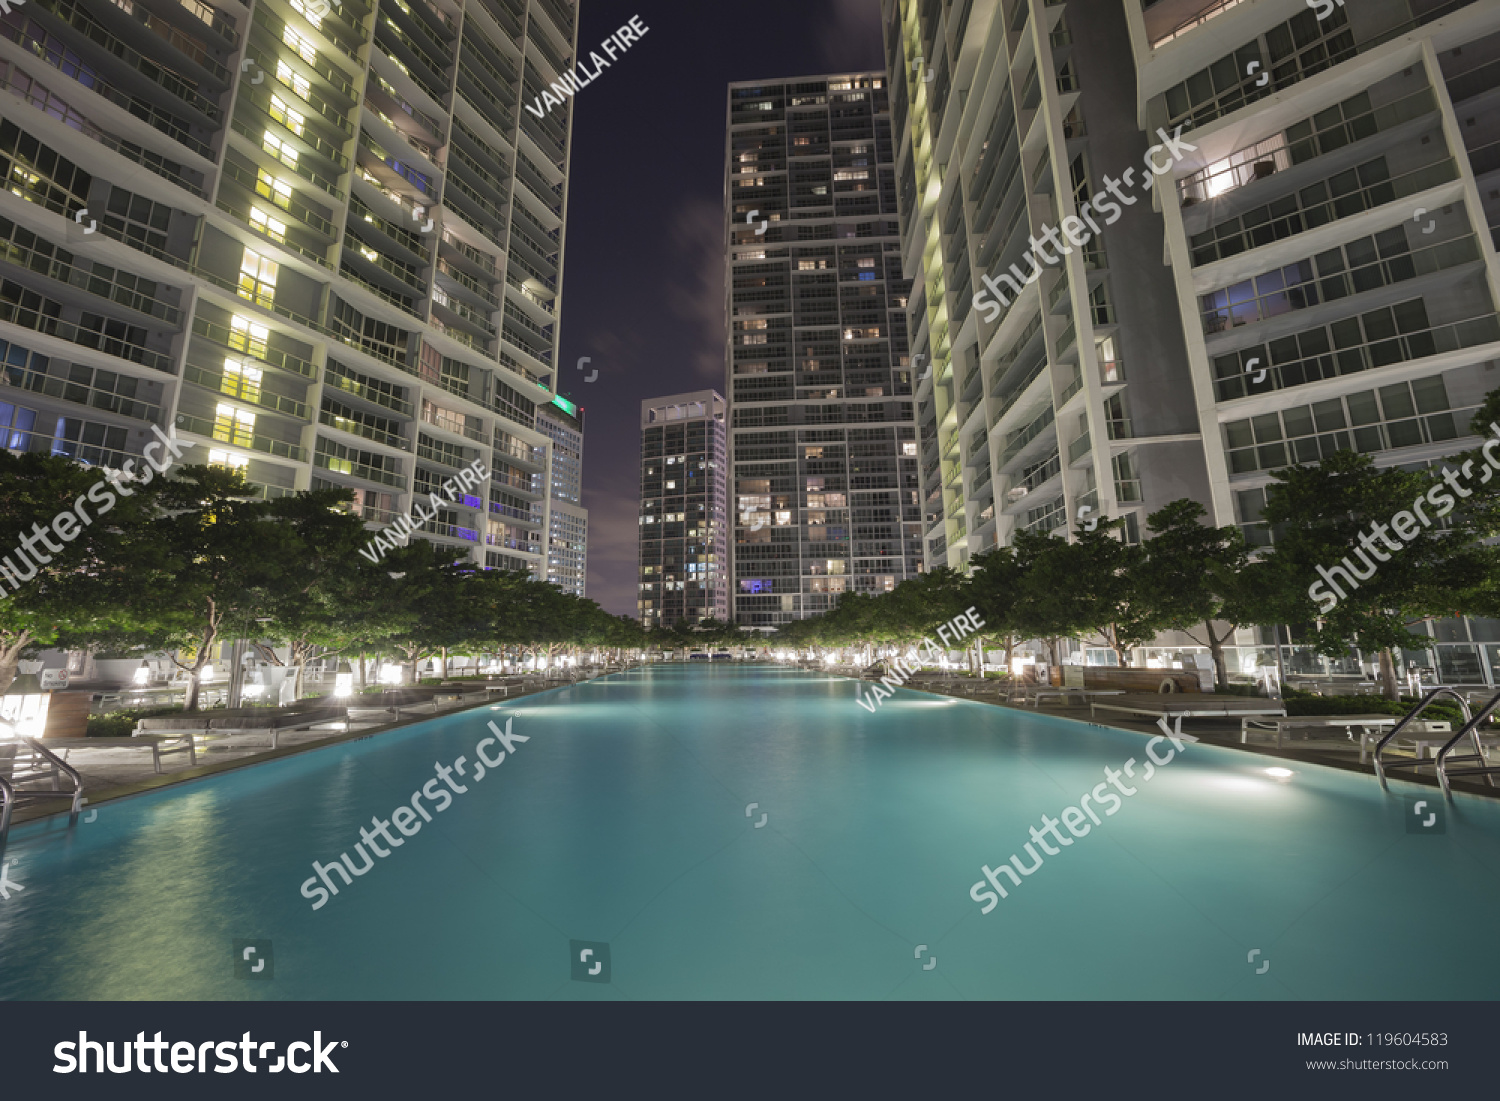 Swimming pool among high rise buildings stock photo 119604583 shutterstock for Houston swimming pool high rise